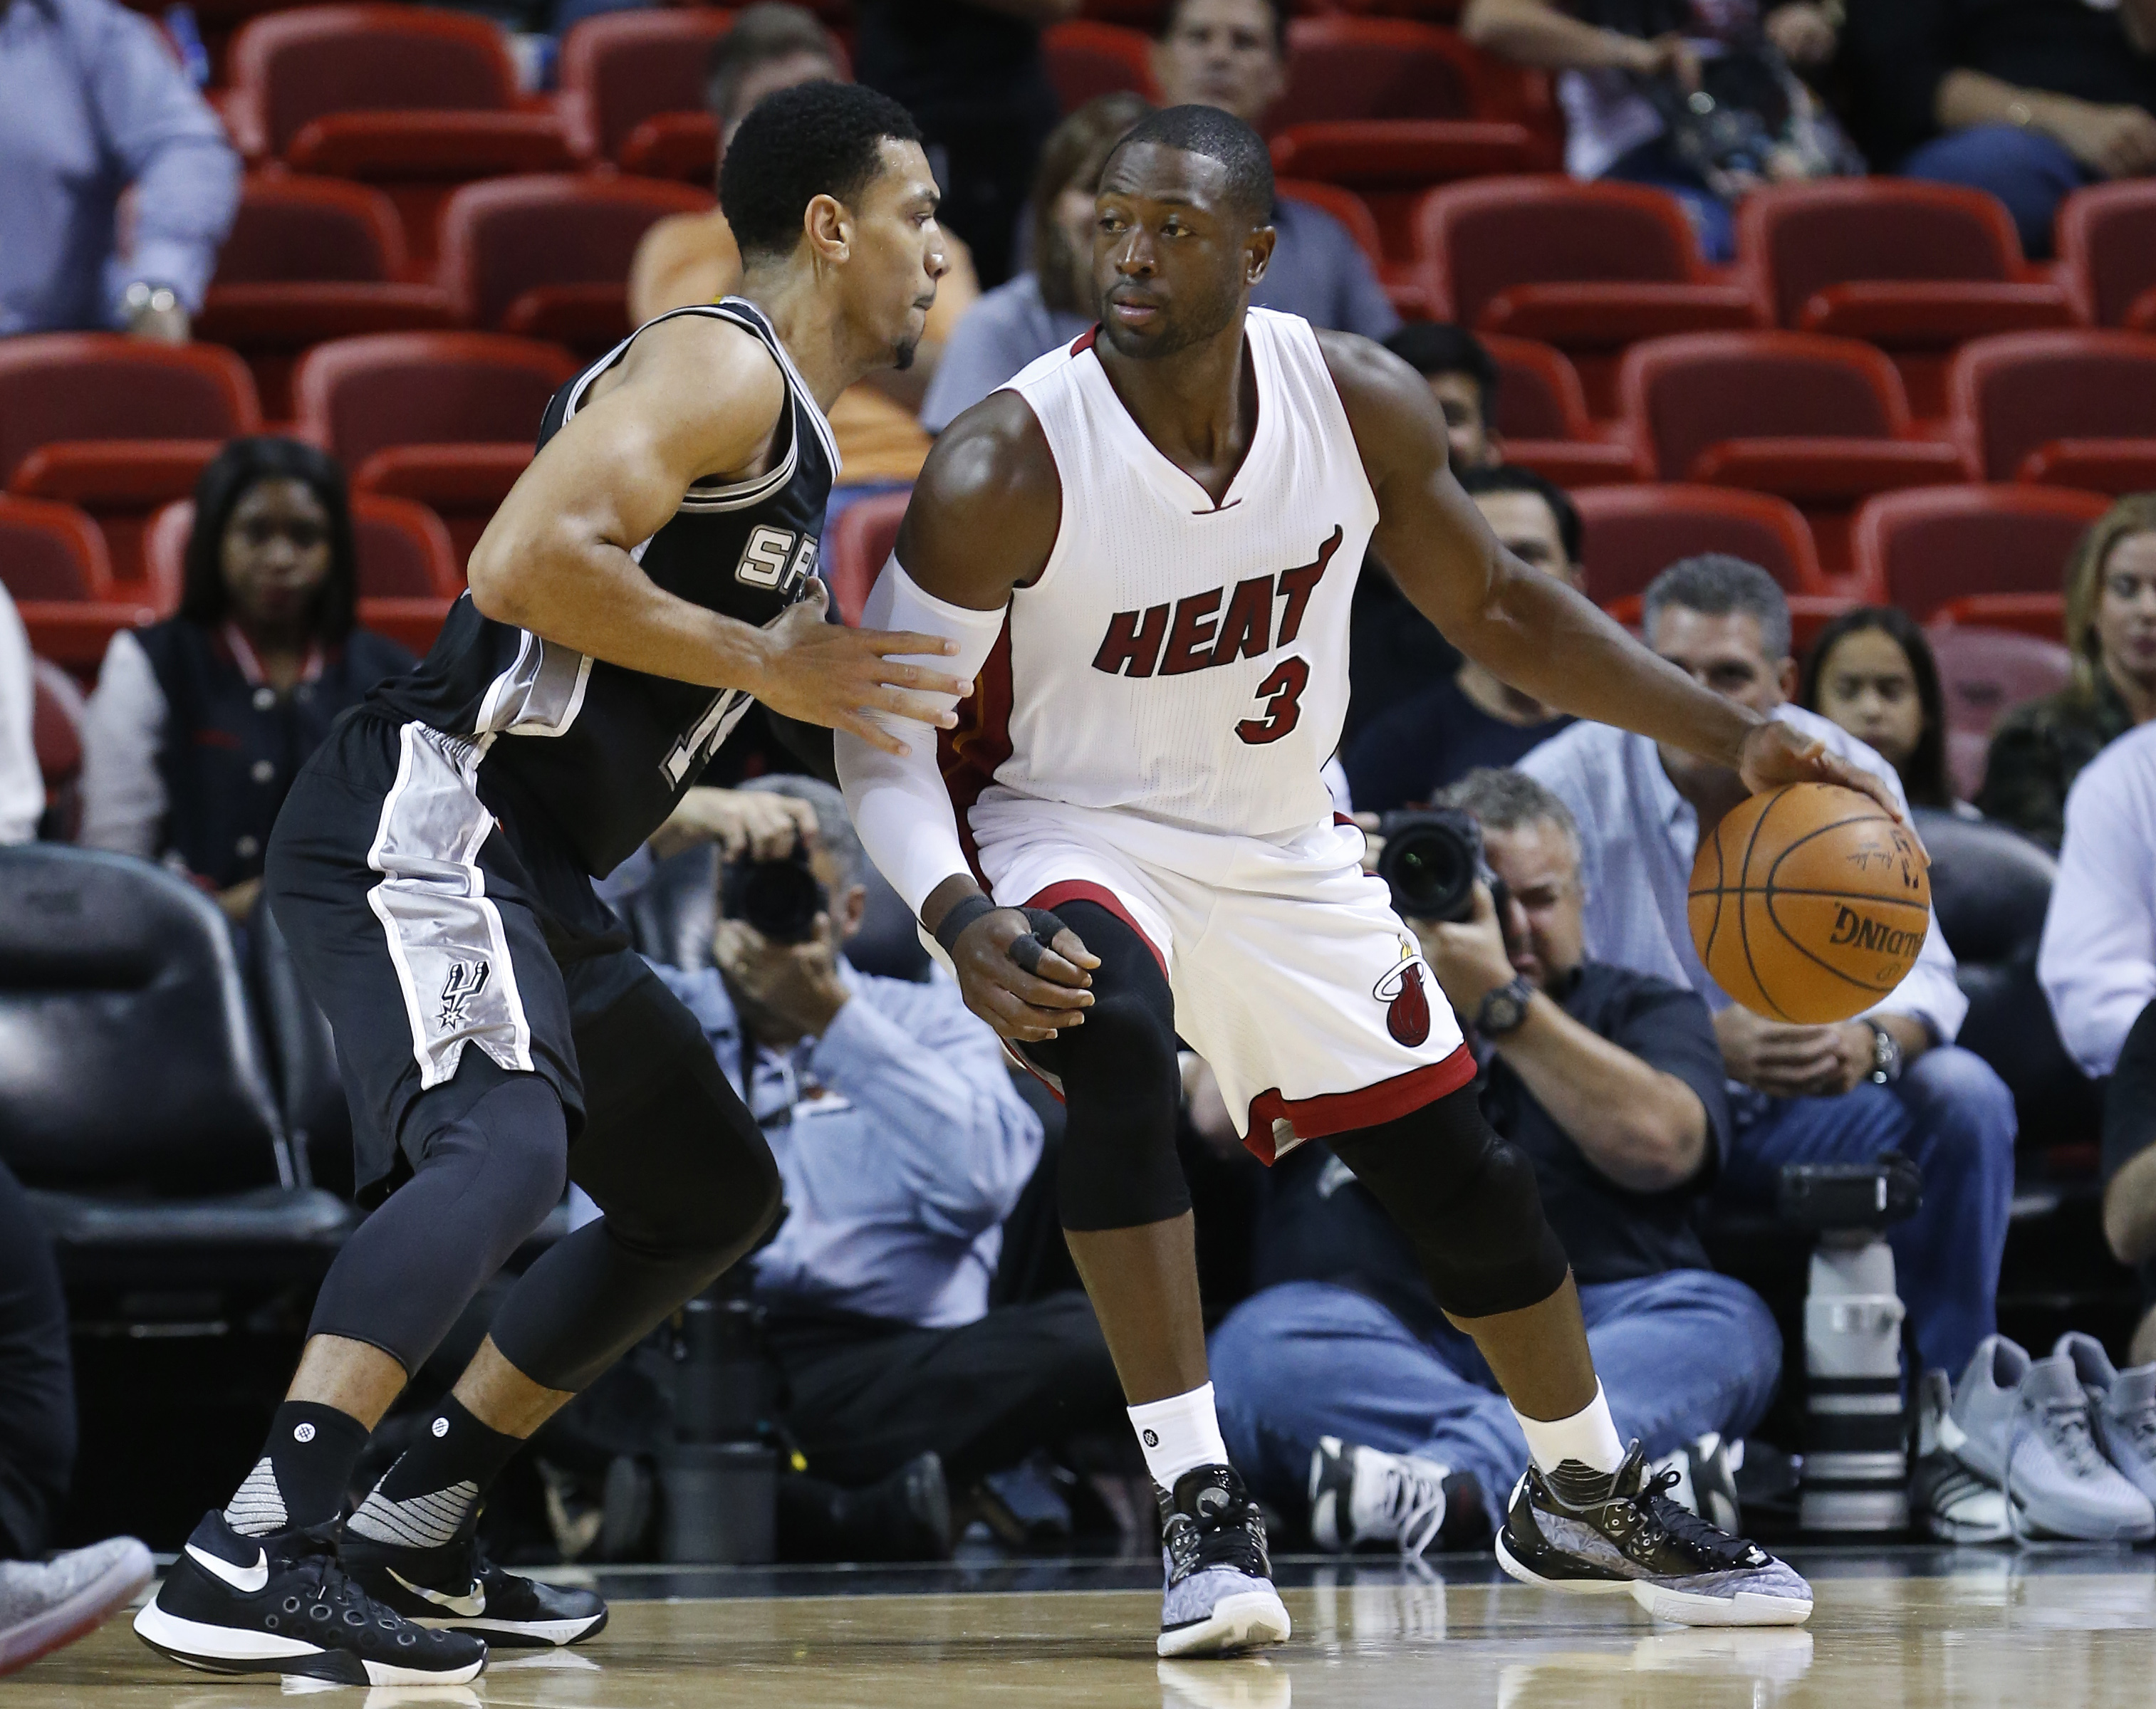 Miami Heat guard Dwyane Wade (3) looks for an opening past San Antonio Spurs guard Danny Green during the first half of a preseason NBA basketball game, Monday, Oct. 12, 2015, in Miami. Wade had 16 points as the Heat defeated the Spurs 97-94. (AP Photo/Wi